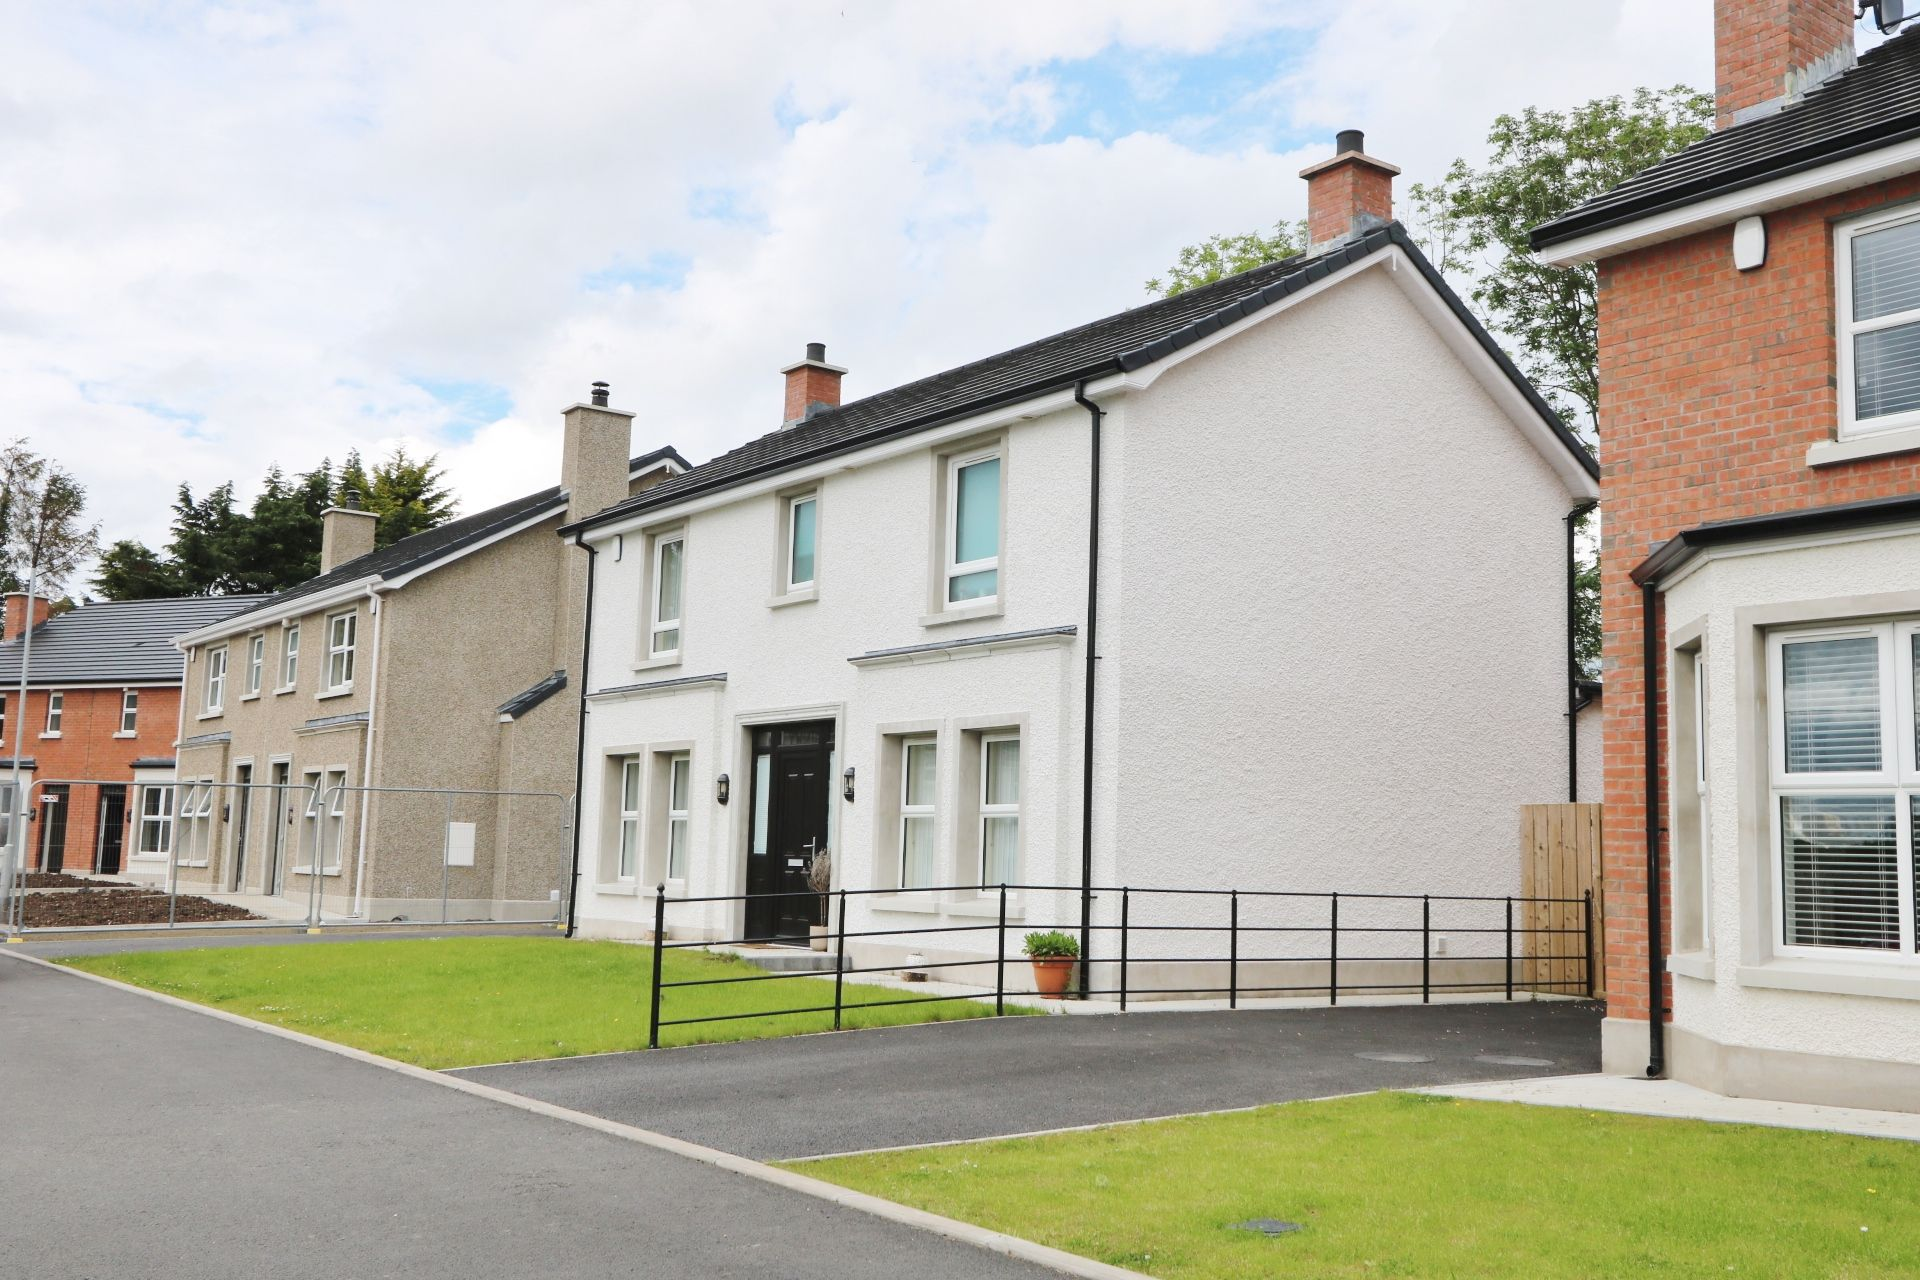 3 bedroom semi-detached house For Sale in Milltown,  Antrim - Photograph 6